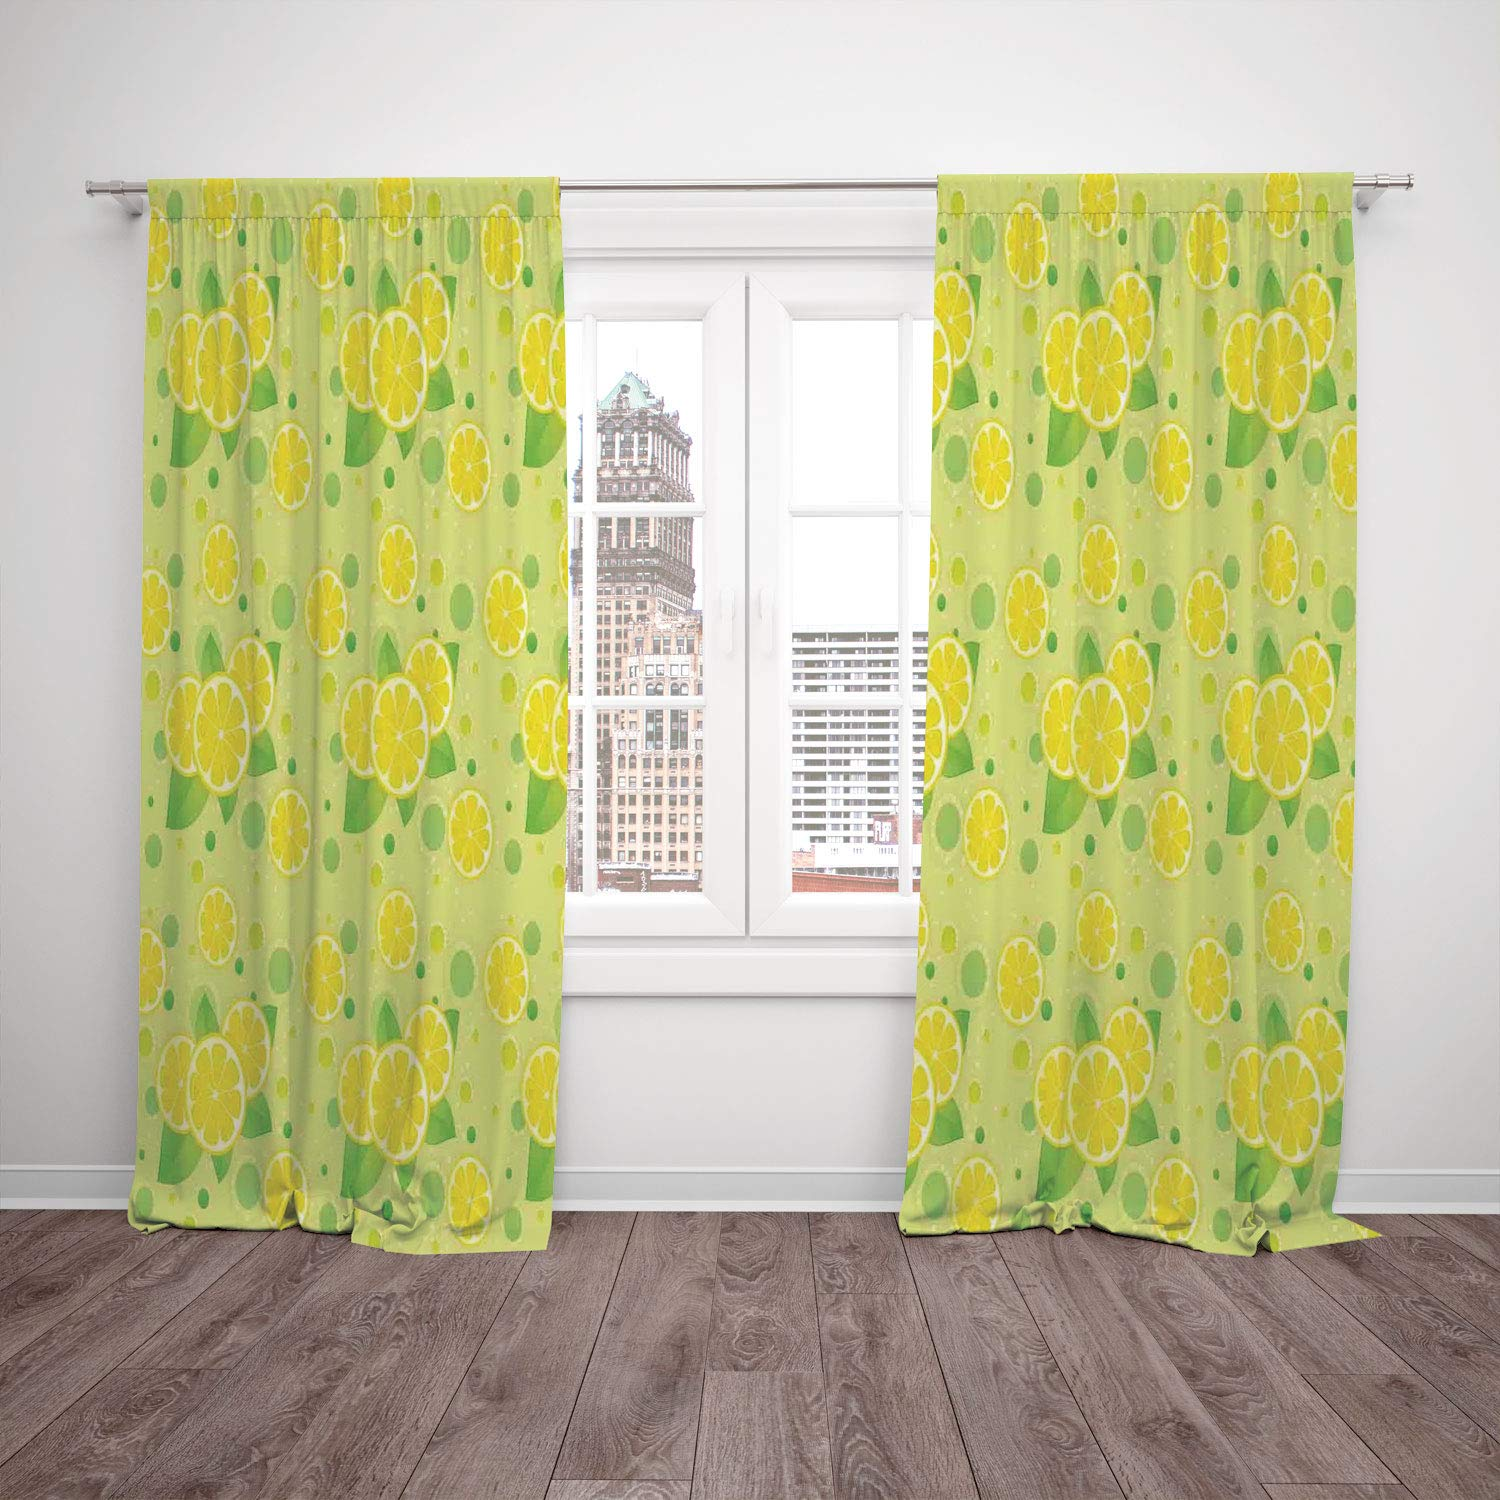 2 Panel Set Thermal Insulated Blackout Window Curtain,Kitchen Decor Lemon and Lime Pattern Retro Vintage Style Citrus Fruit Circles Natural Image Yellow Green,for Bedroom Living Room Dorm Kitchen Cafe